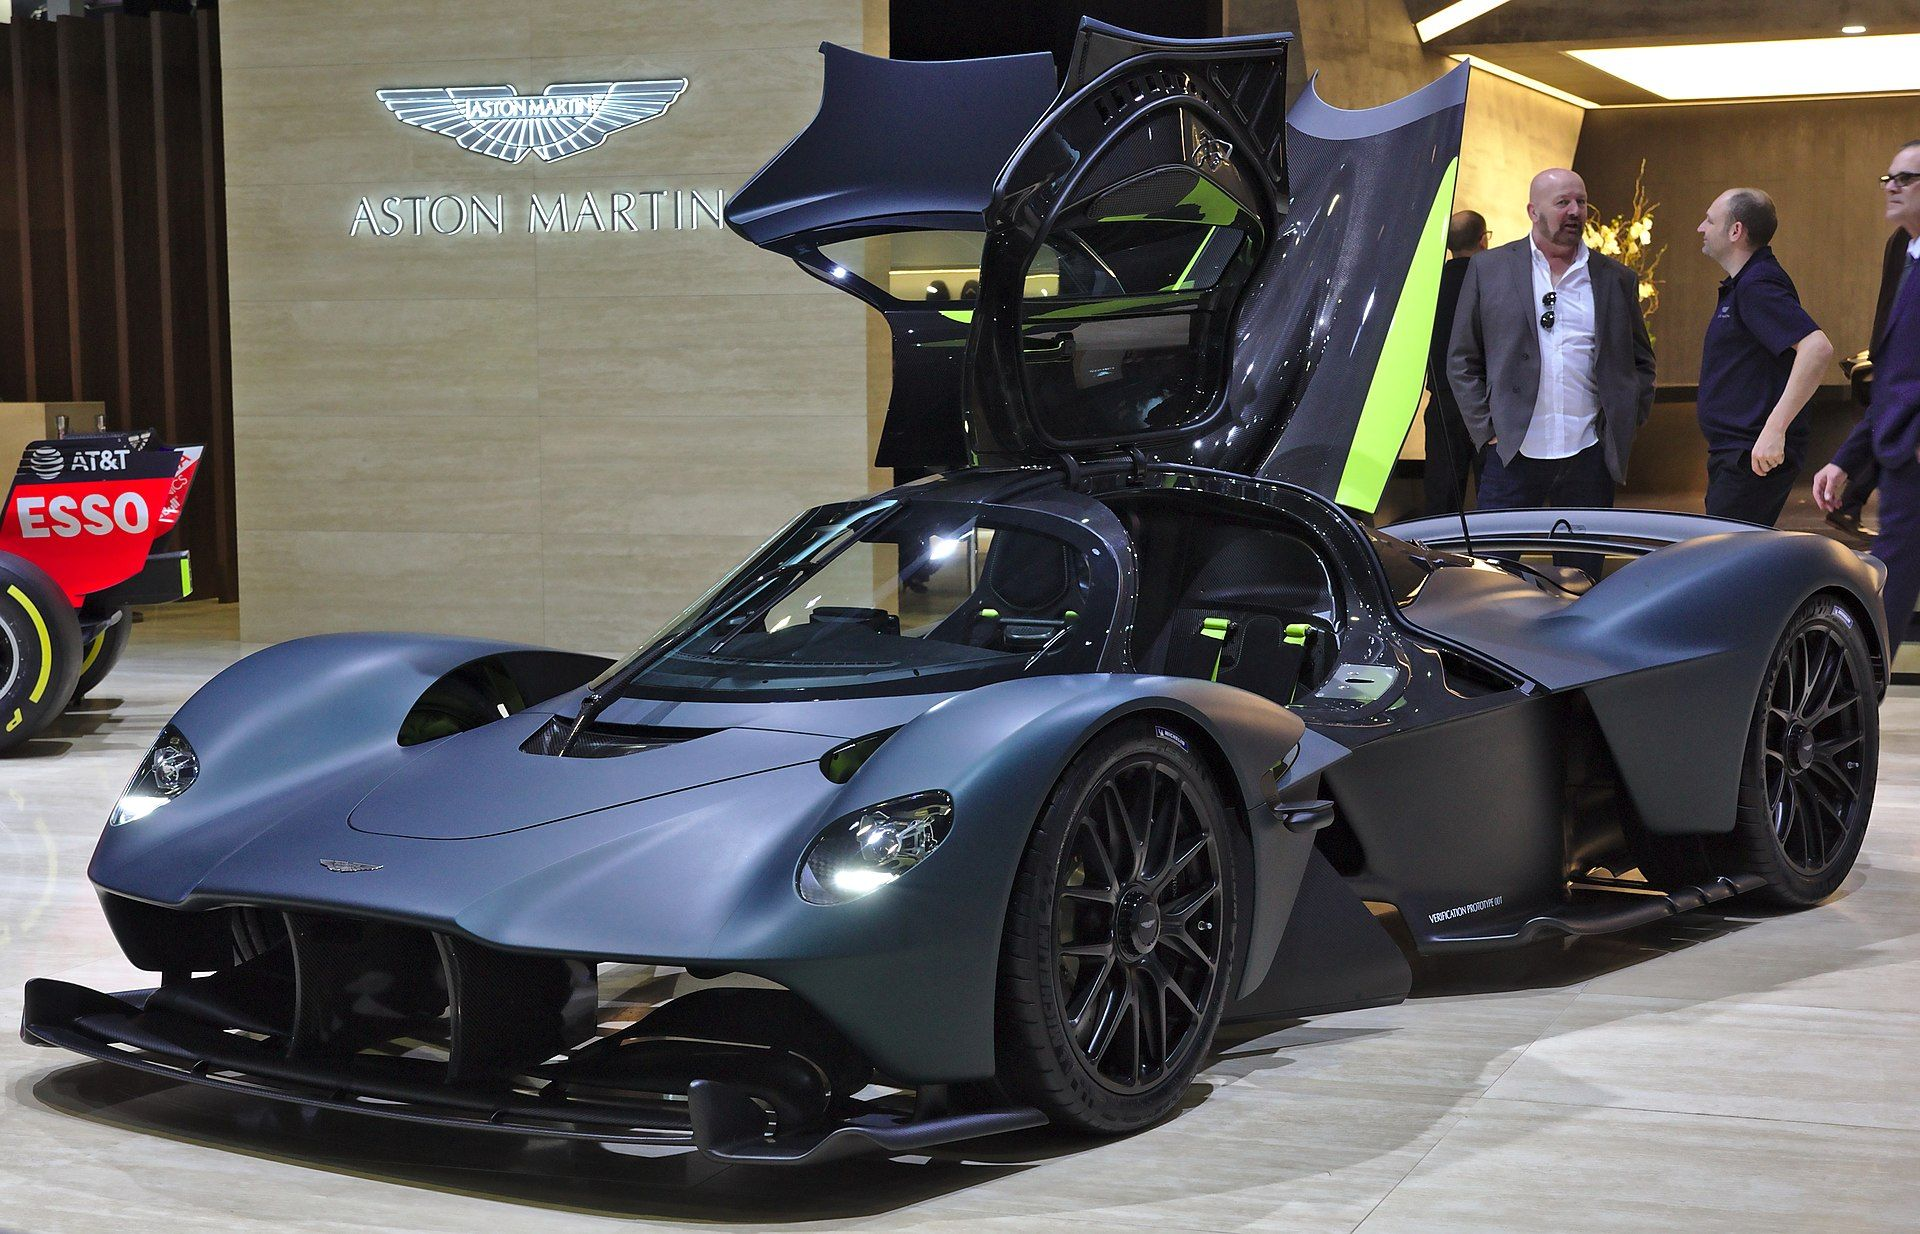 Aston Martin Valkyrie Verification Prototype 001 Genf 2019 1y7a5569 Aston Martin Valkyrie Wikipedia Aston Martin Super Cars Sports Cars